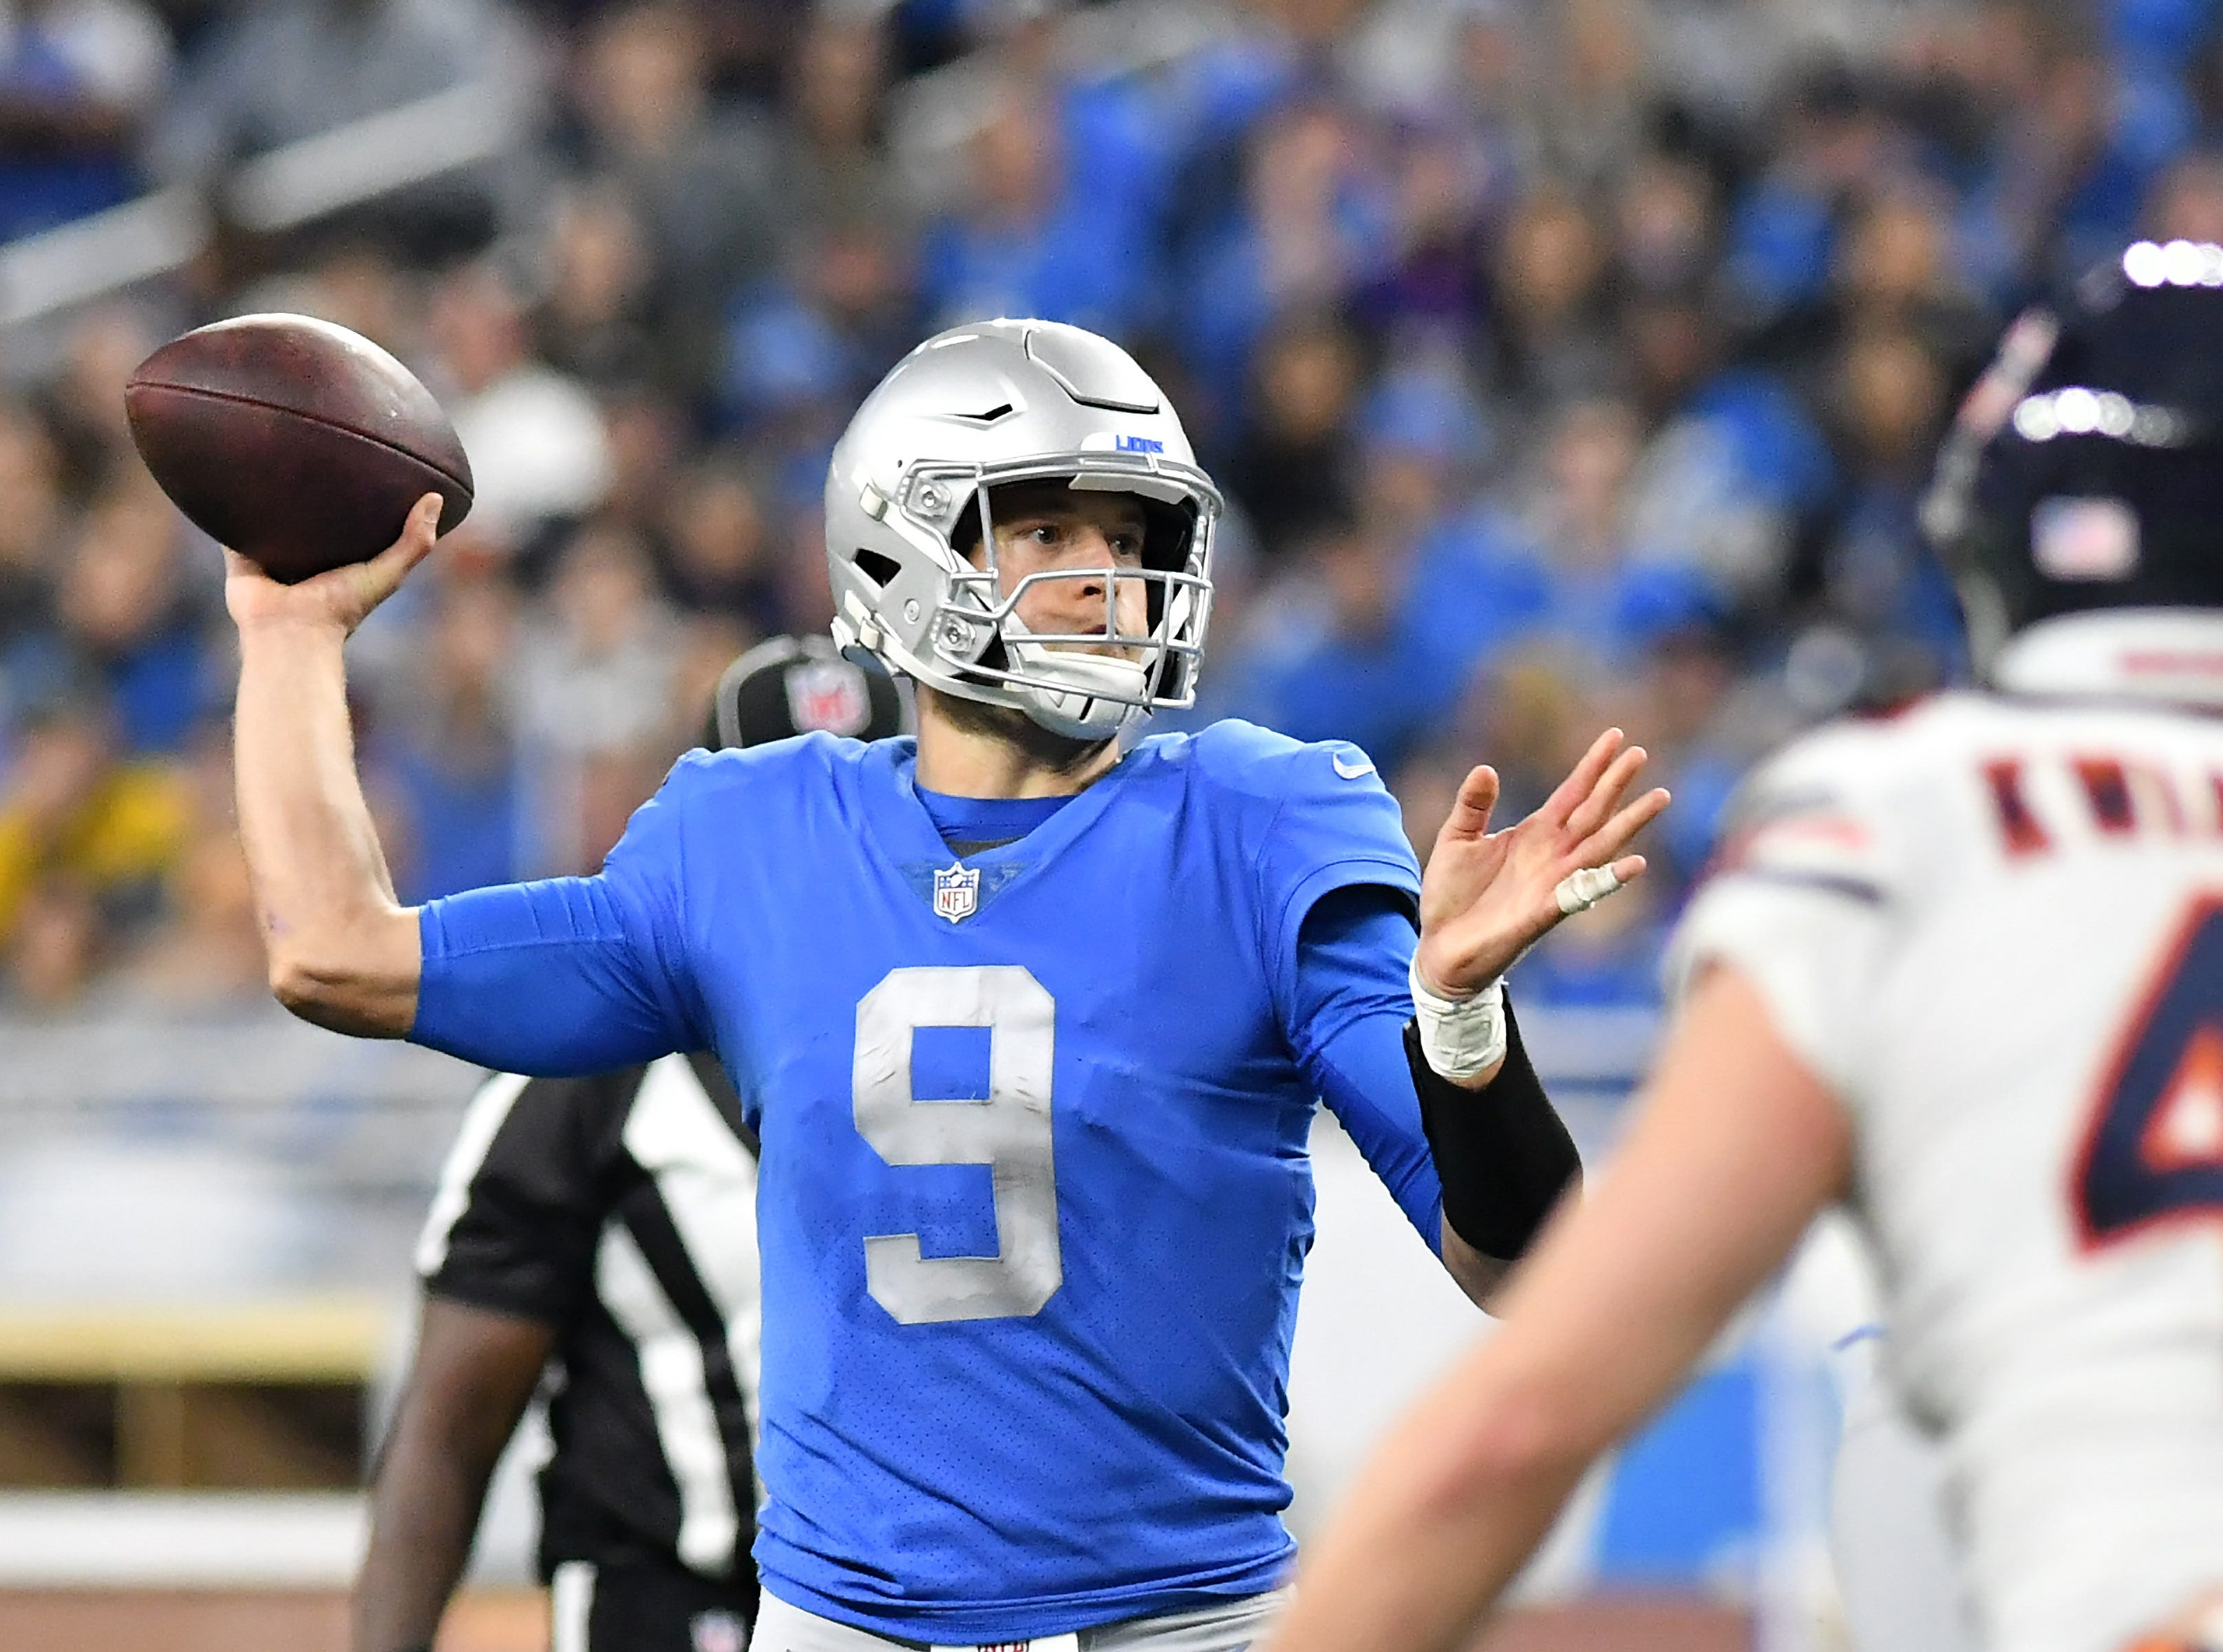 Lions quarterback Matthew Stafford looks for an open man late In the fourth quarter.  Detroit Lions vs Chicago Bears on Thanksgiving Day at Ford Field in Detroit on Nov. 22, 2018.  Bears win, 23-16.(Robin Buckson / Detroit News)